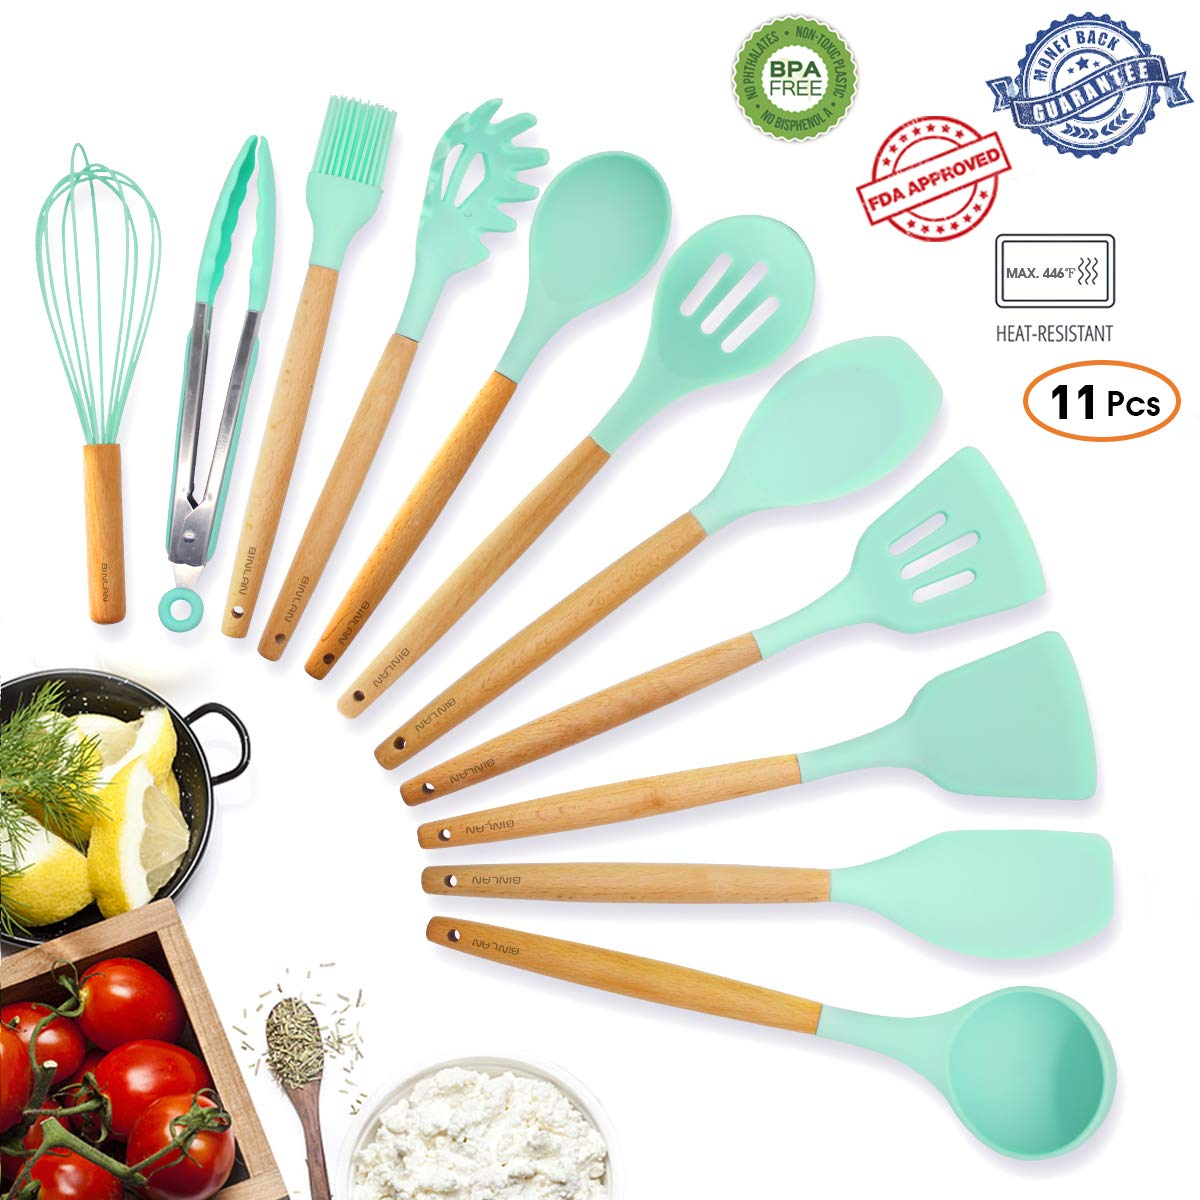 Kitchen Utensil Set Silicone Cooking Utensils, 11 Pieces Premium Natural Beech Wooden Handle Turner Spoon Ladle Gadgets Tool, BPA Free Pioneer Cookware Protect Gift for Woman Mom Family, Mint Green